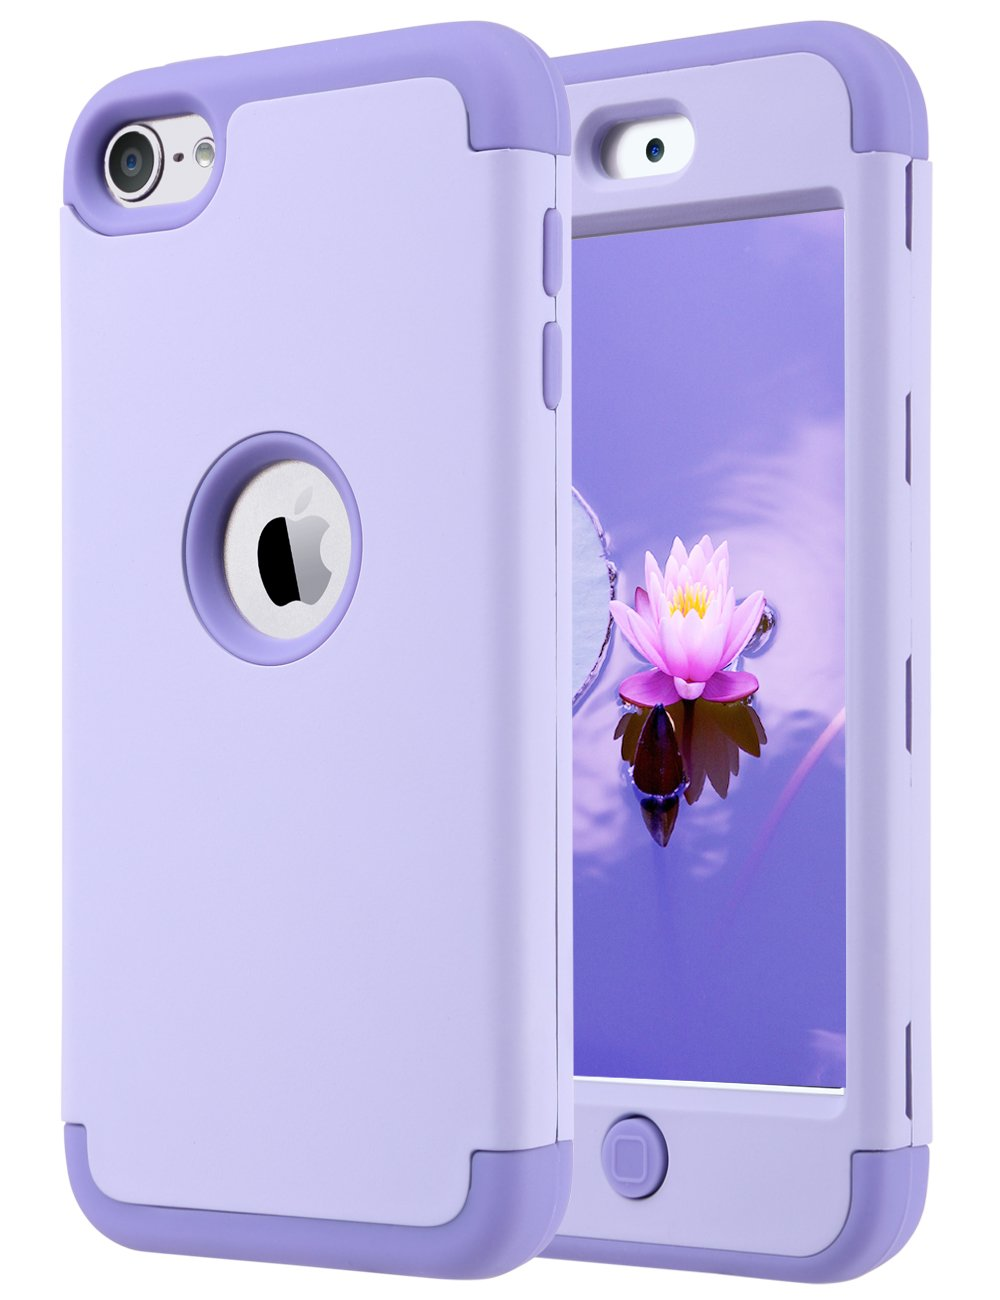 Funda Para Apple iPod Touch 5/6/7 Generacion (violeta)